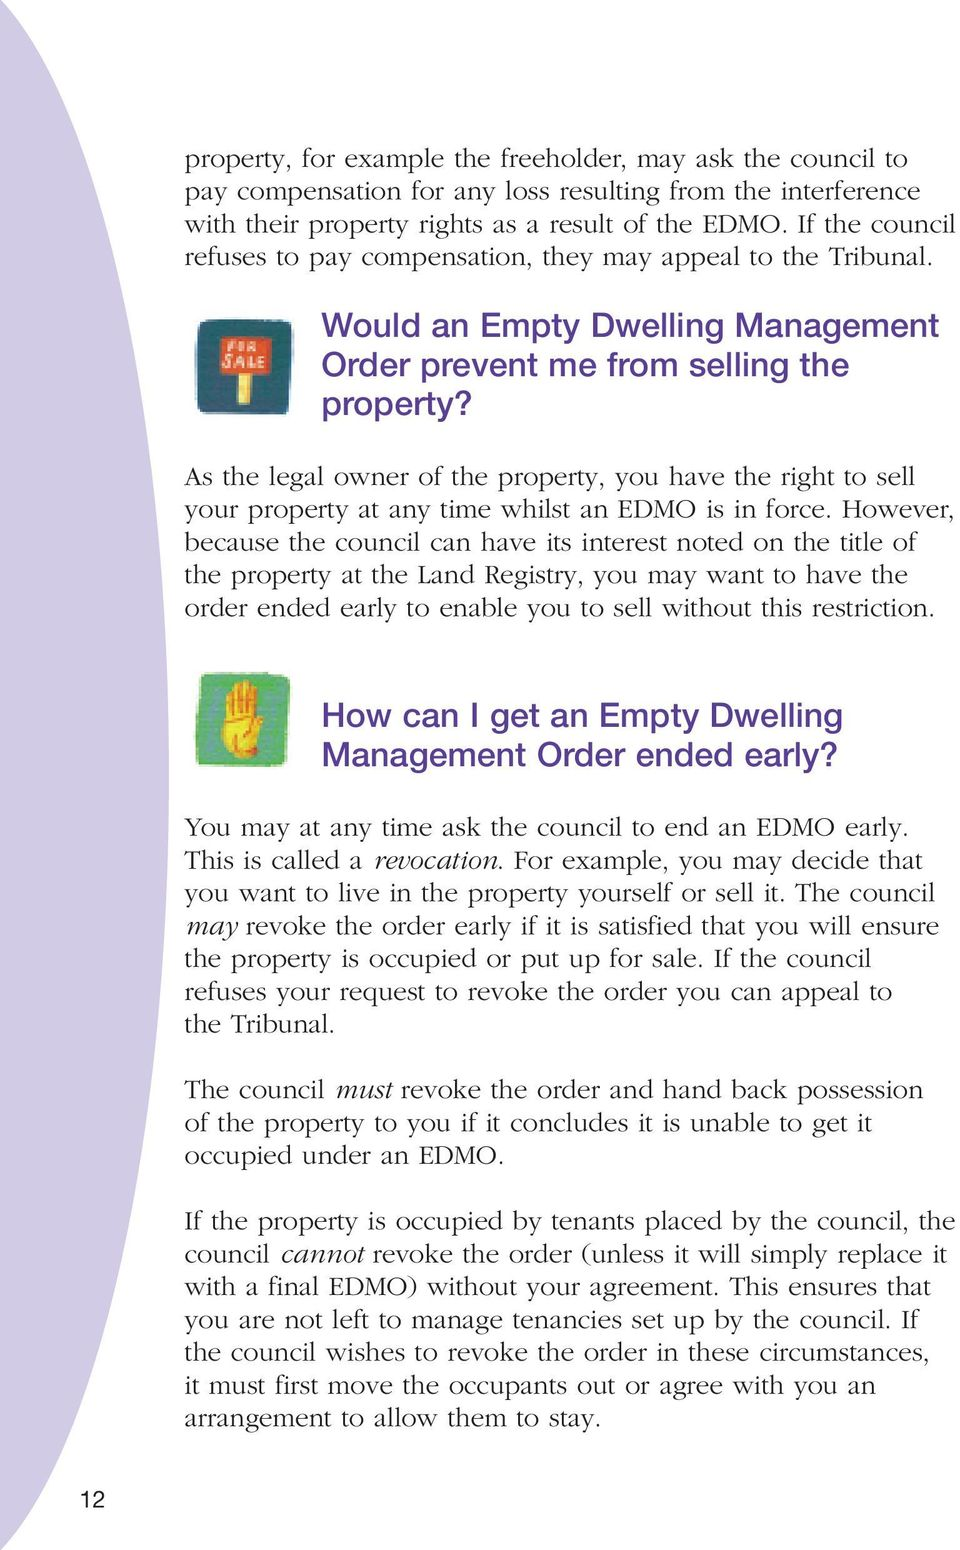 As the legal owner of the property, you have the right to sell your property at any time whilst an EDMO is in force.